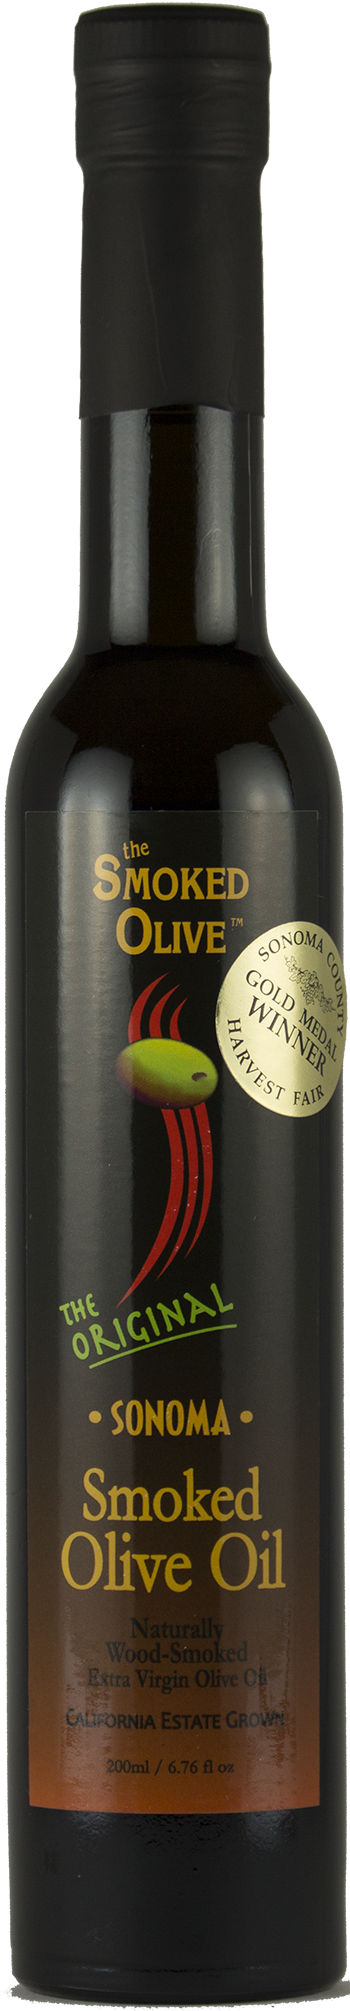 Smoked Olive - SONOMA Smoked Olive Oil